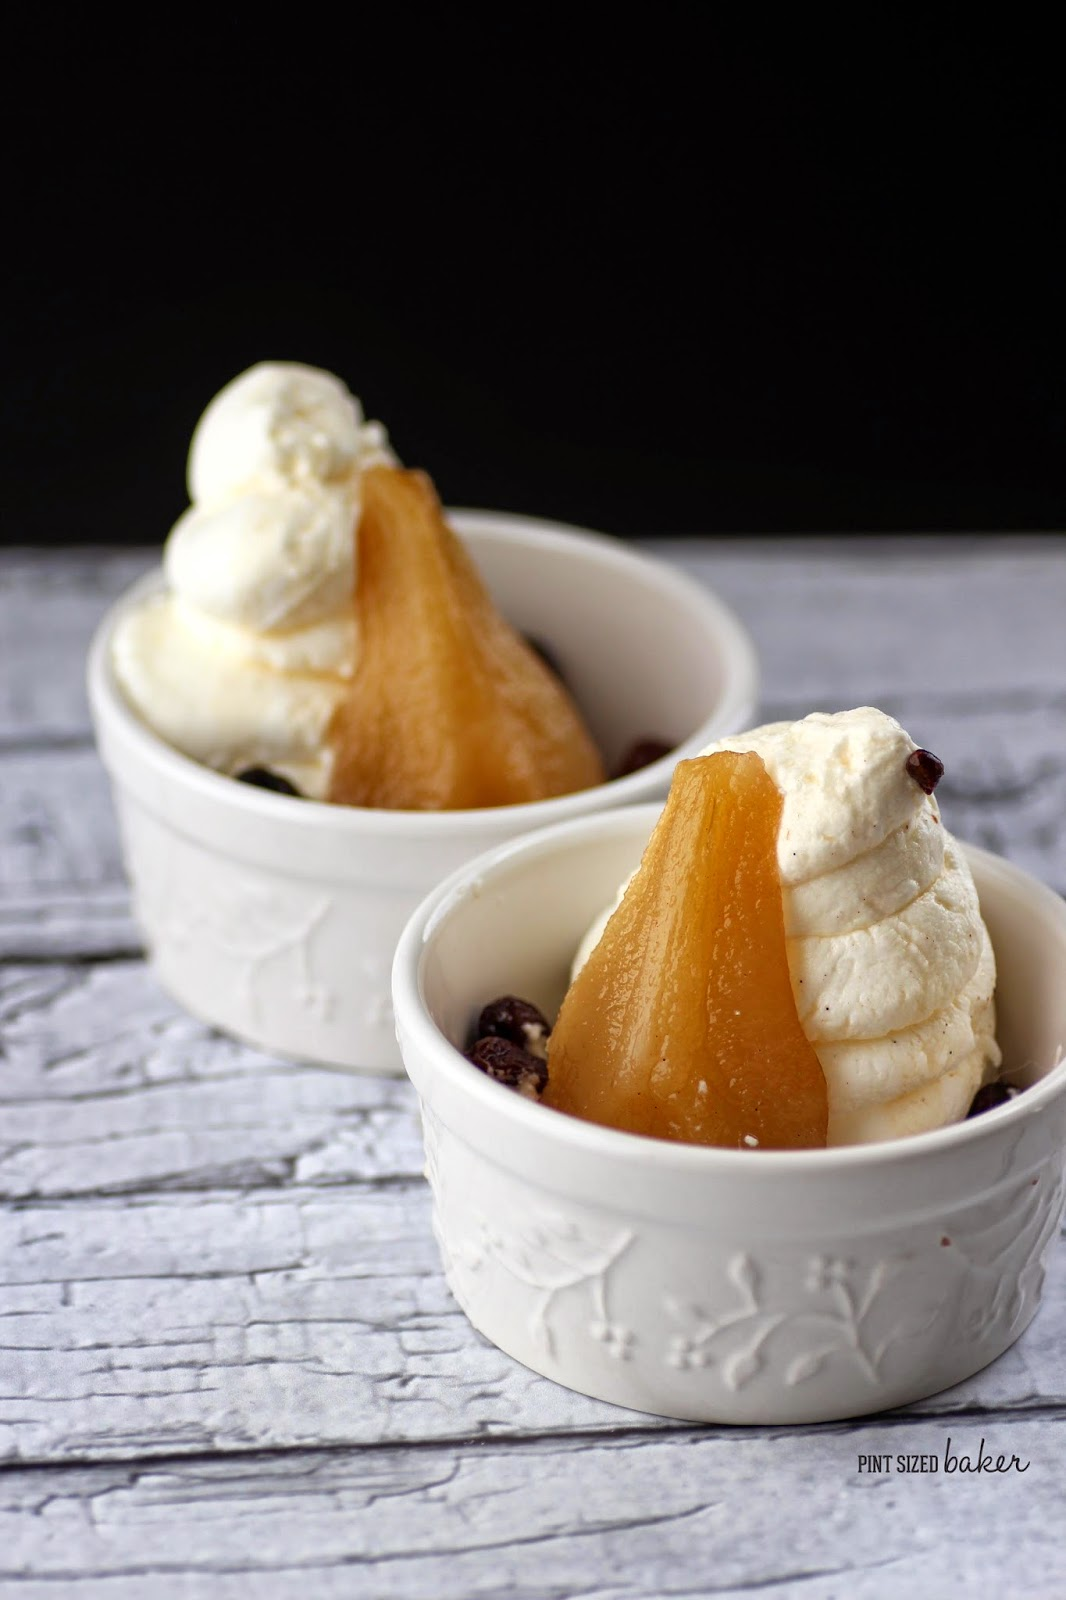 Enjoy some warm, poached pears that are easy to make and delicious for the whole family to enjoy.